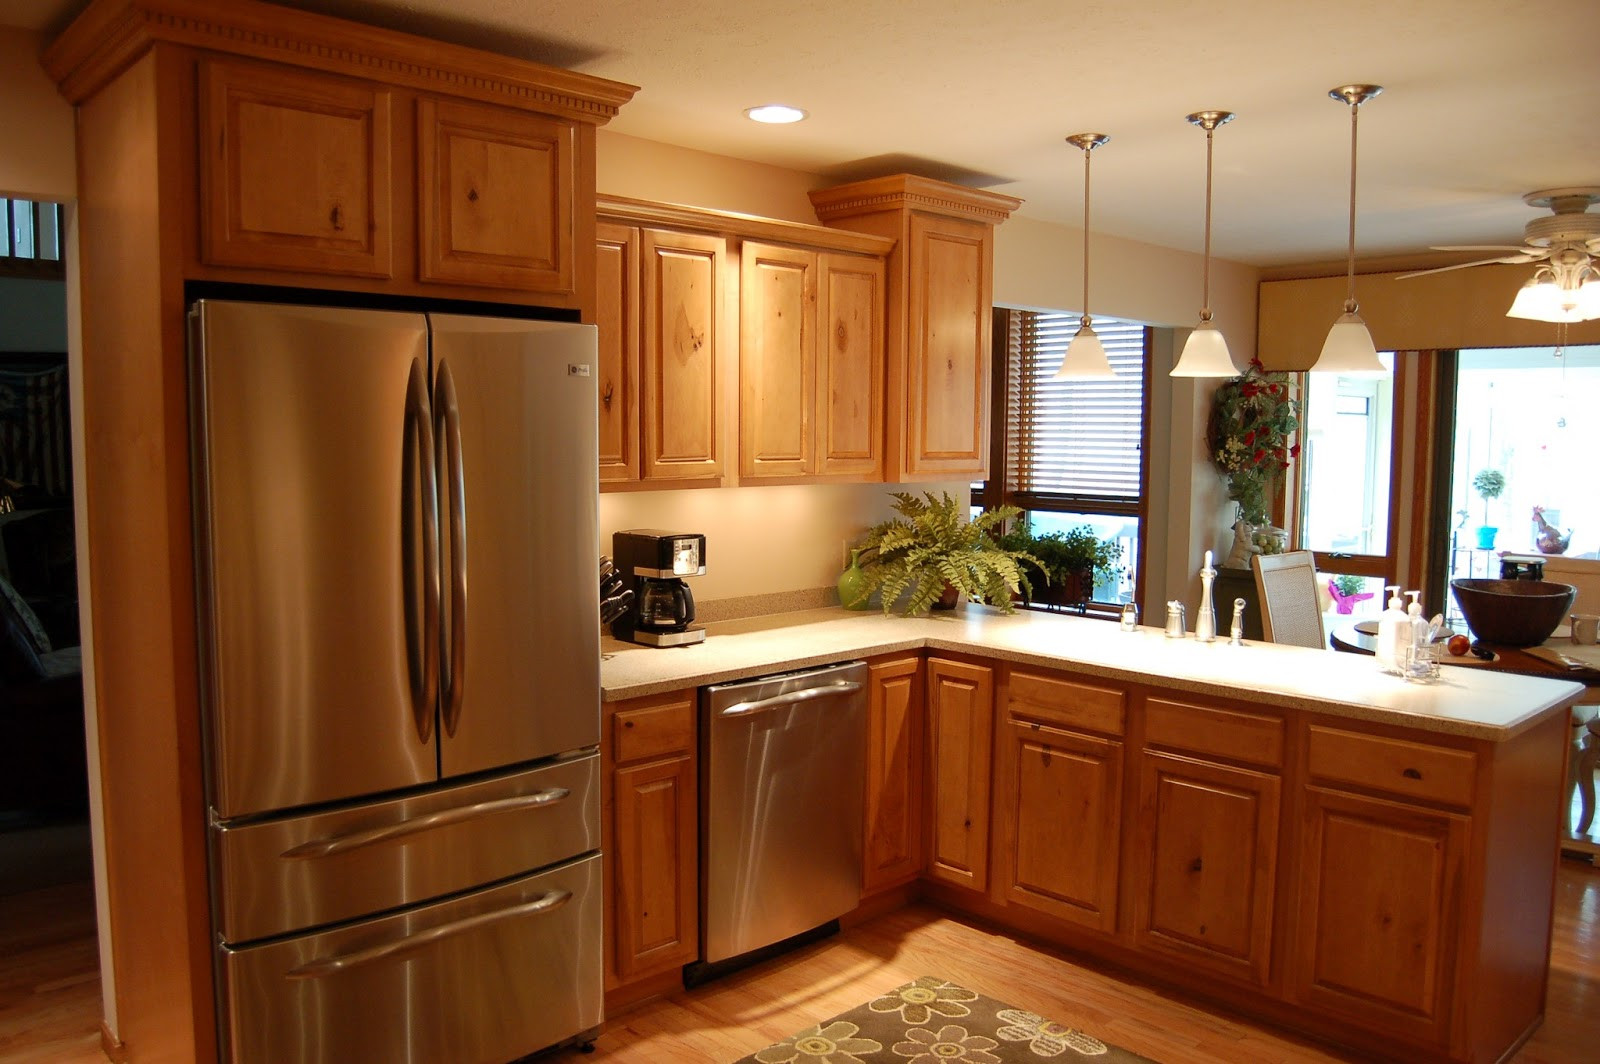 Kitchen Remodeling Ideas Pictures  Chicago Kitchen Remodeling Ideas Kitchen Remodeling Chicago